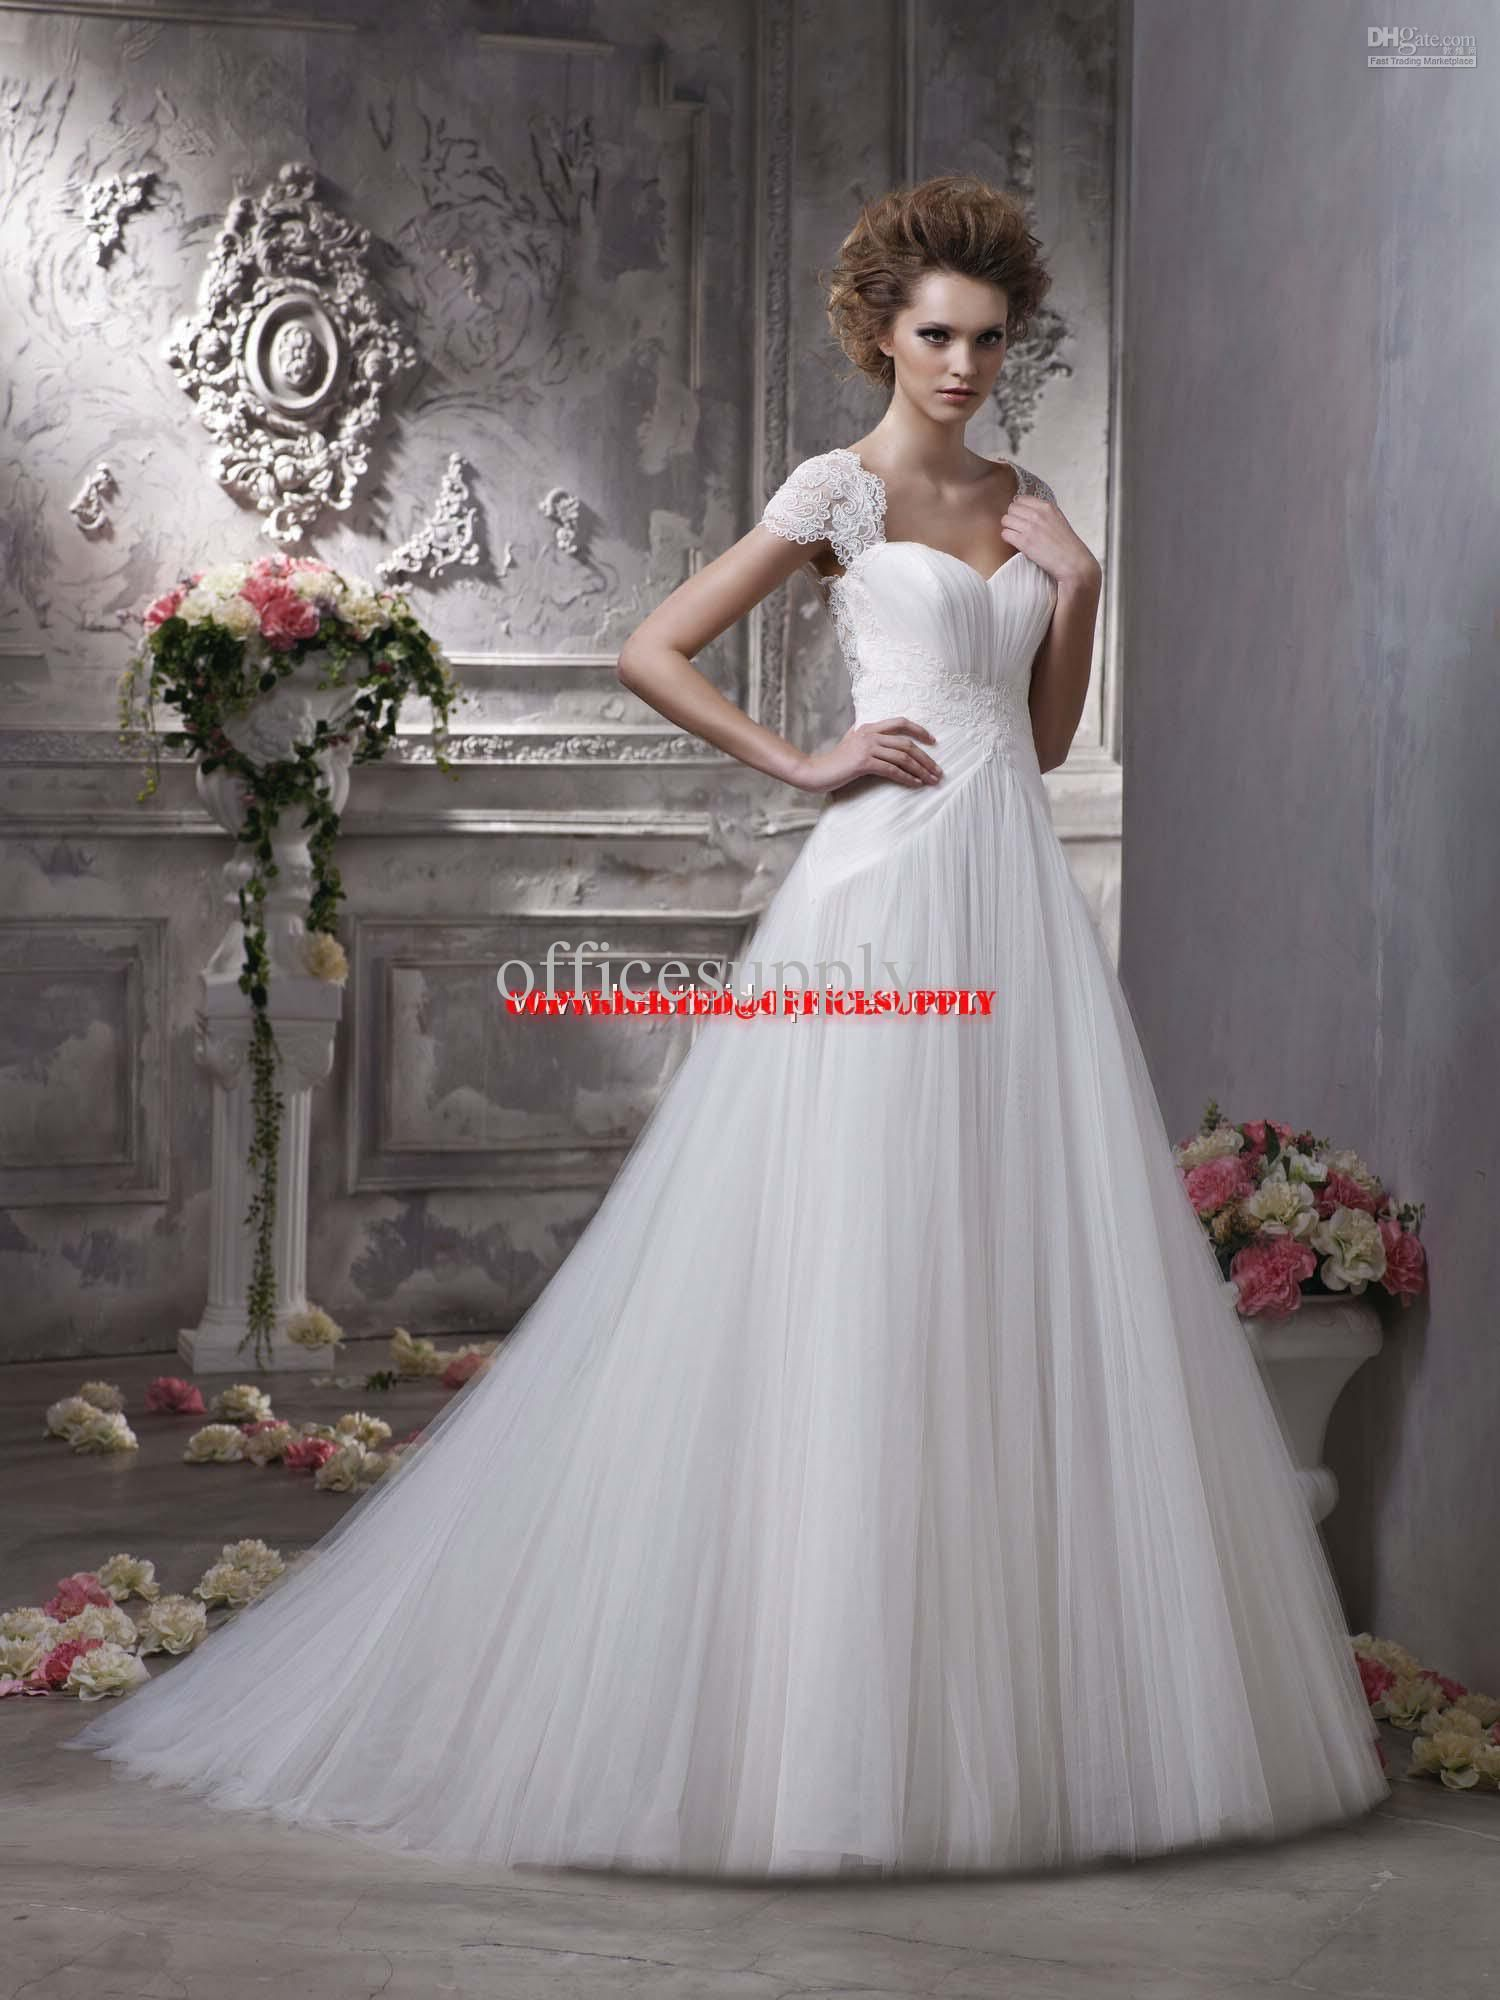 White lace wedding dress with sleeves  Wholesale Tulle Ball Gown Cap sleeve Wedding Dresses with sweetheart